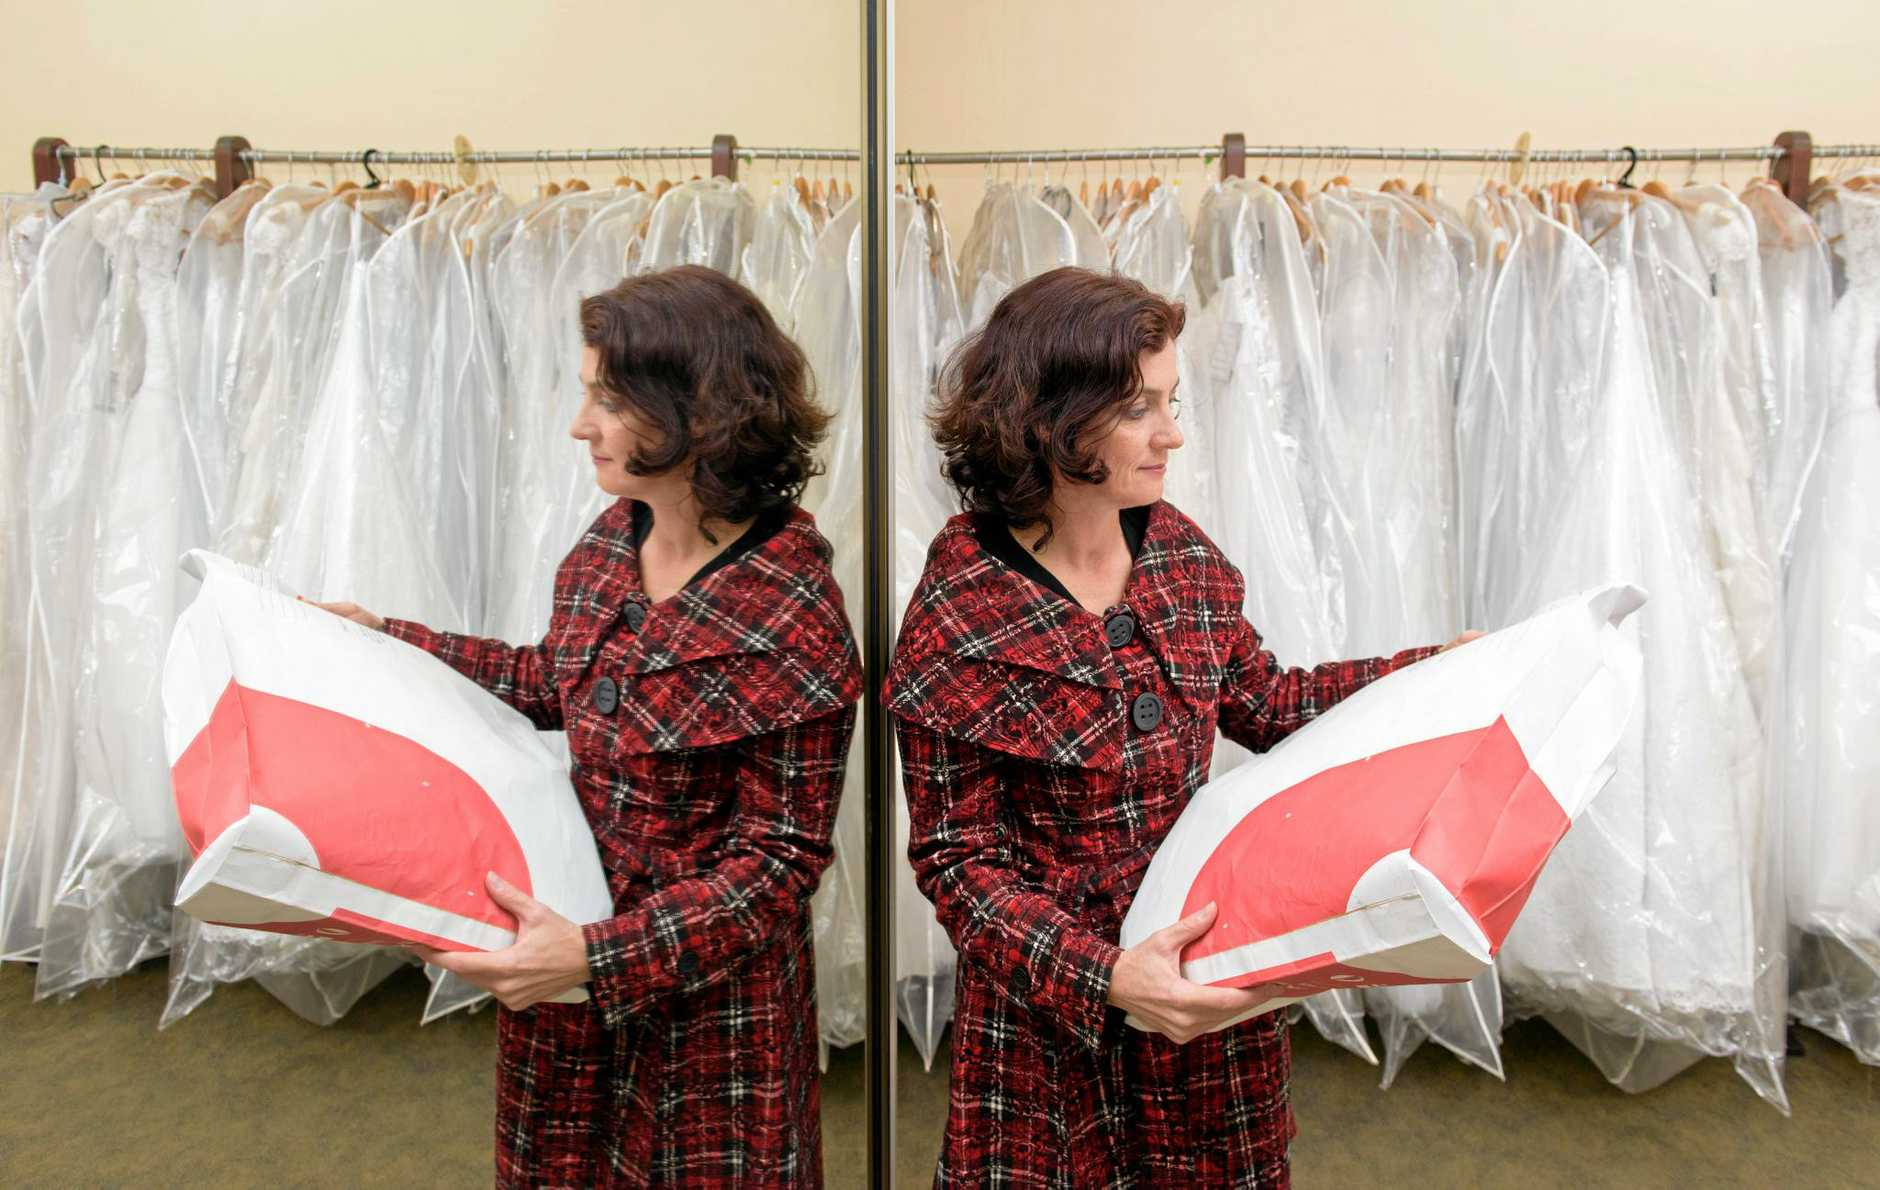 Leah Stevenson of Lasting Impressions Bridal Wear with a package she is about to send to a bridal shop in Canberra after the collapse of bridal manufacturer Alfred Angelo.